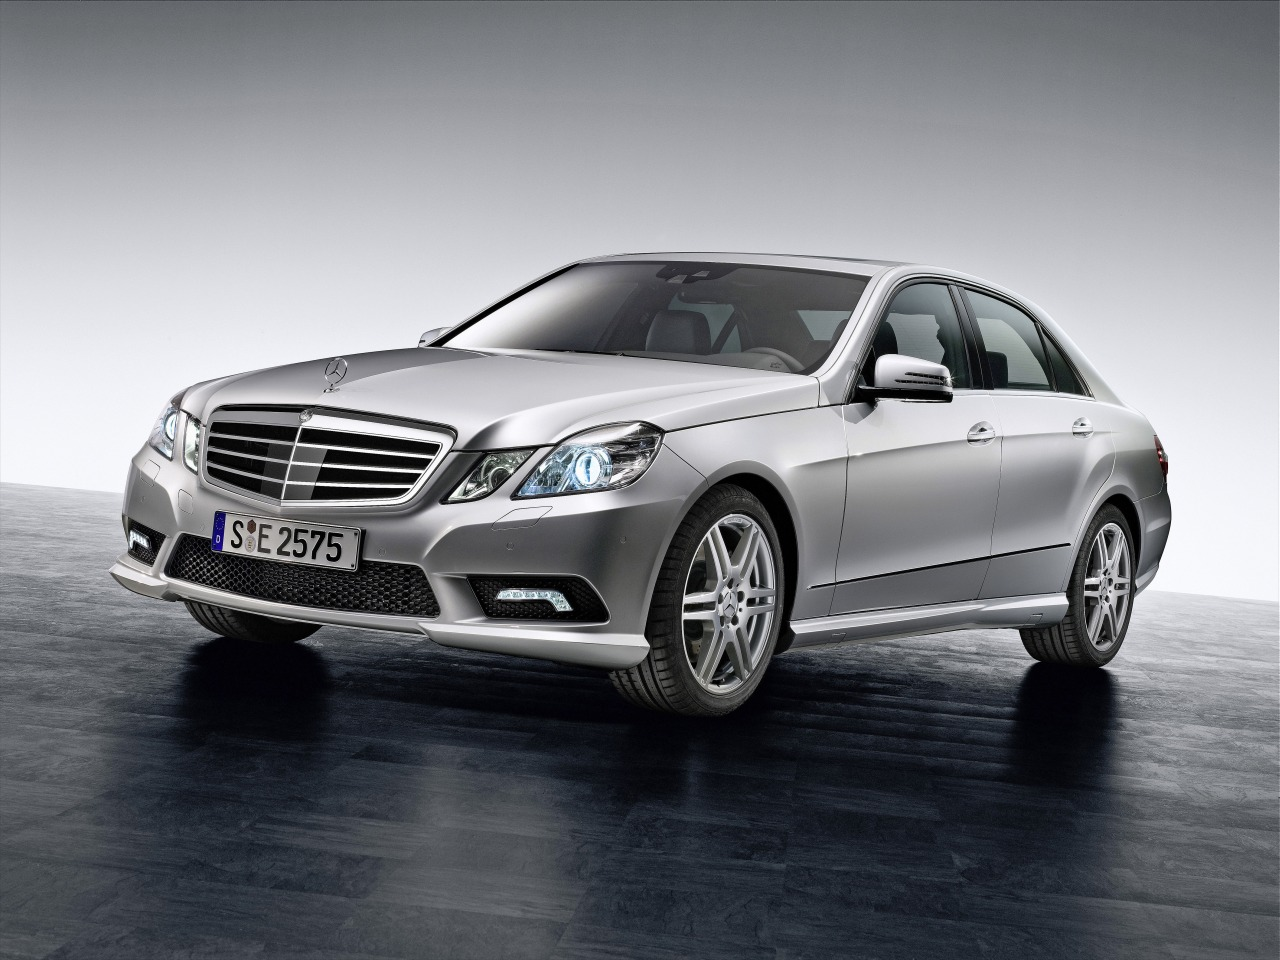 mercedes-benz e series #4